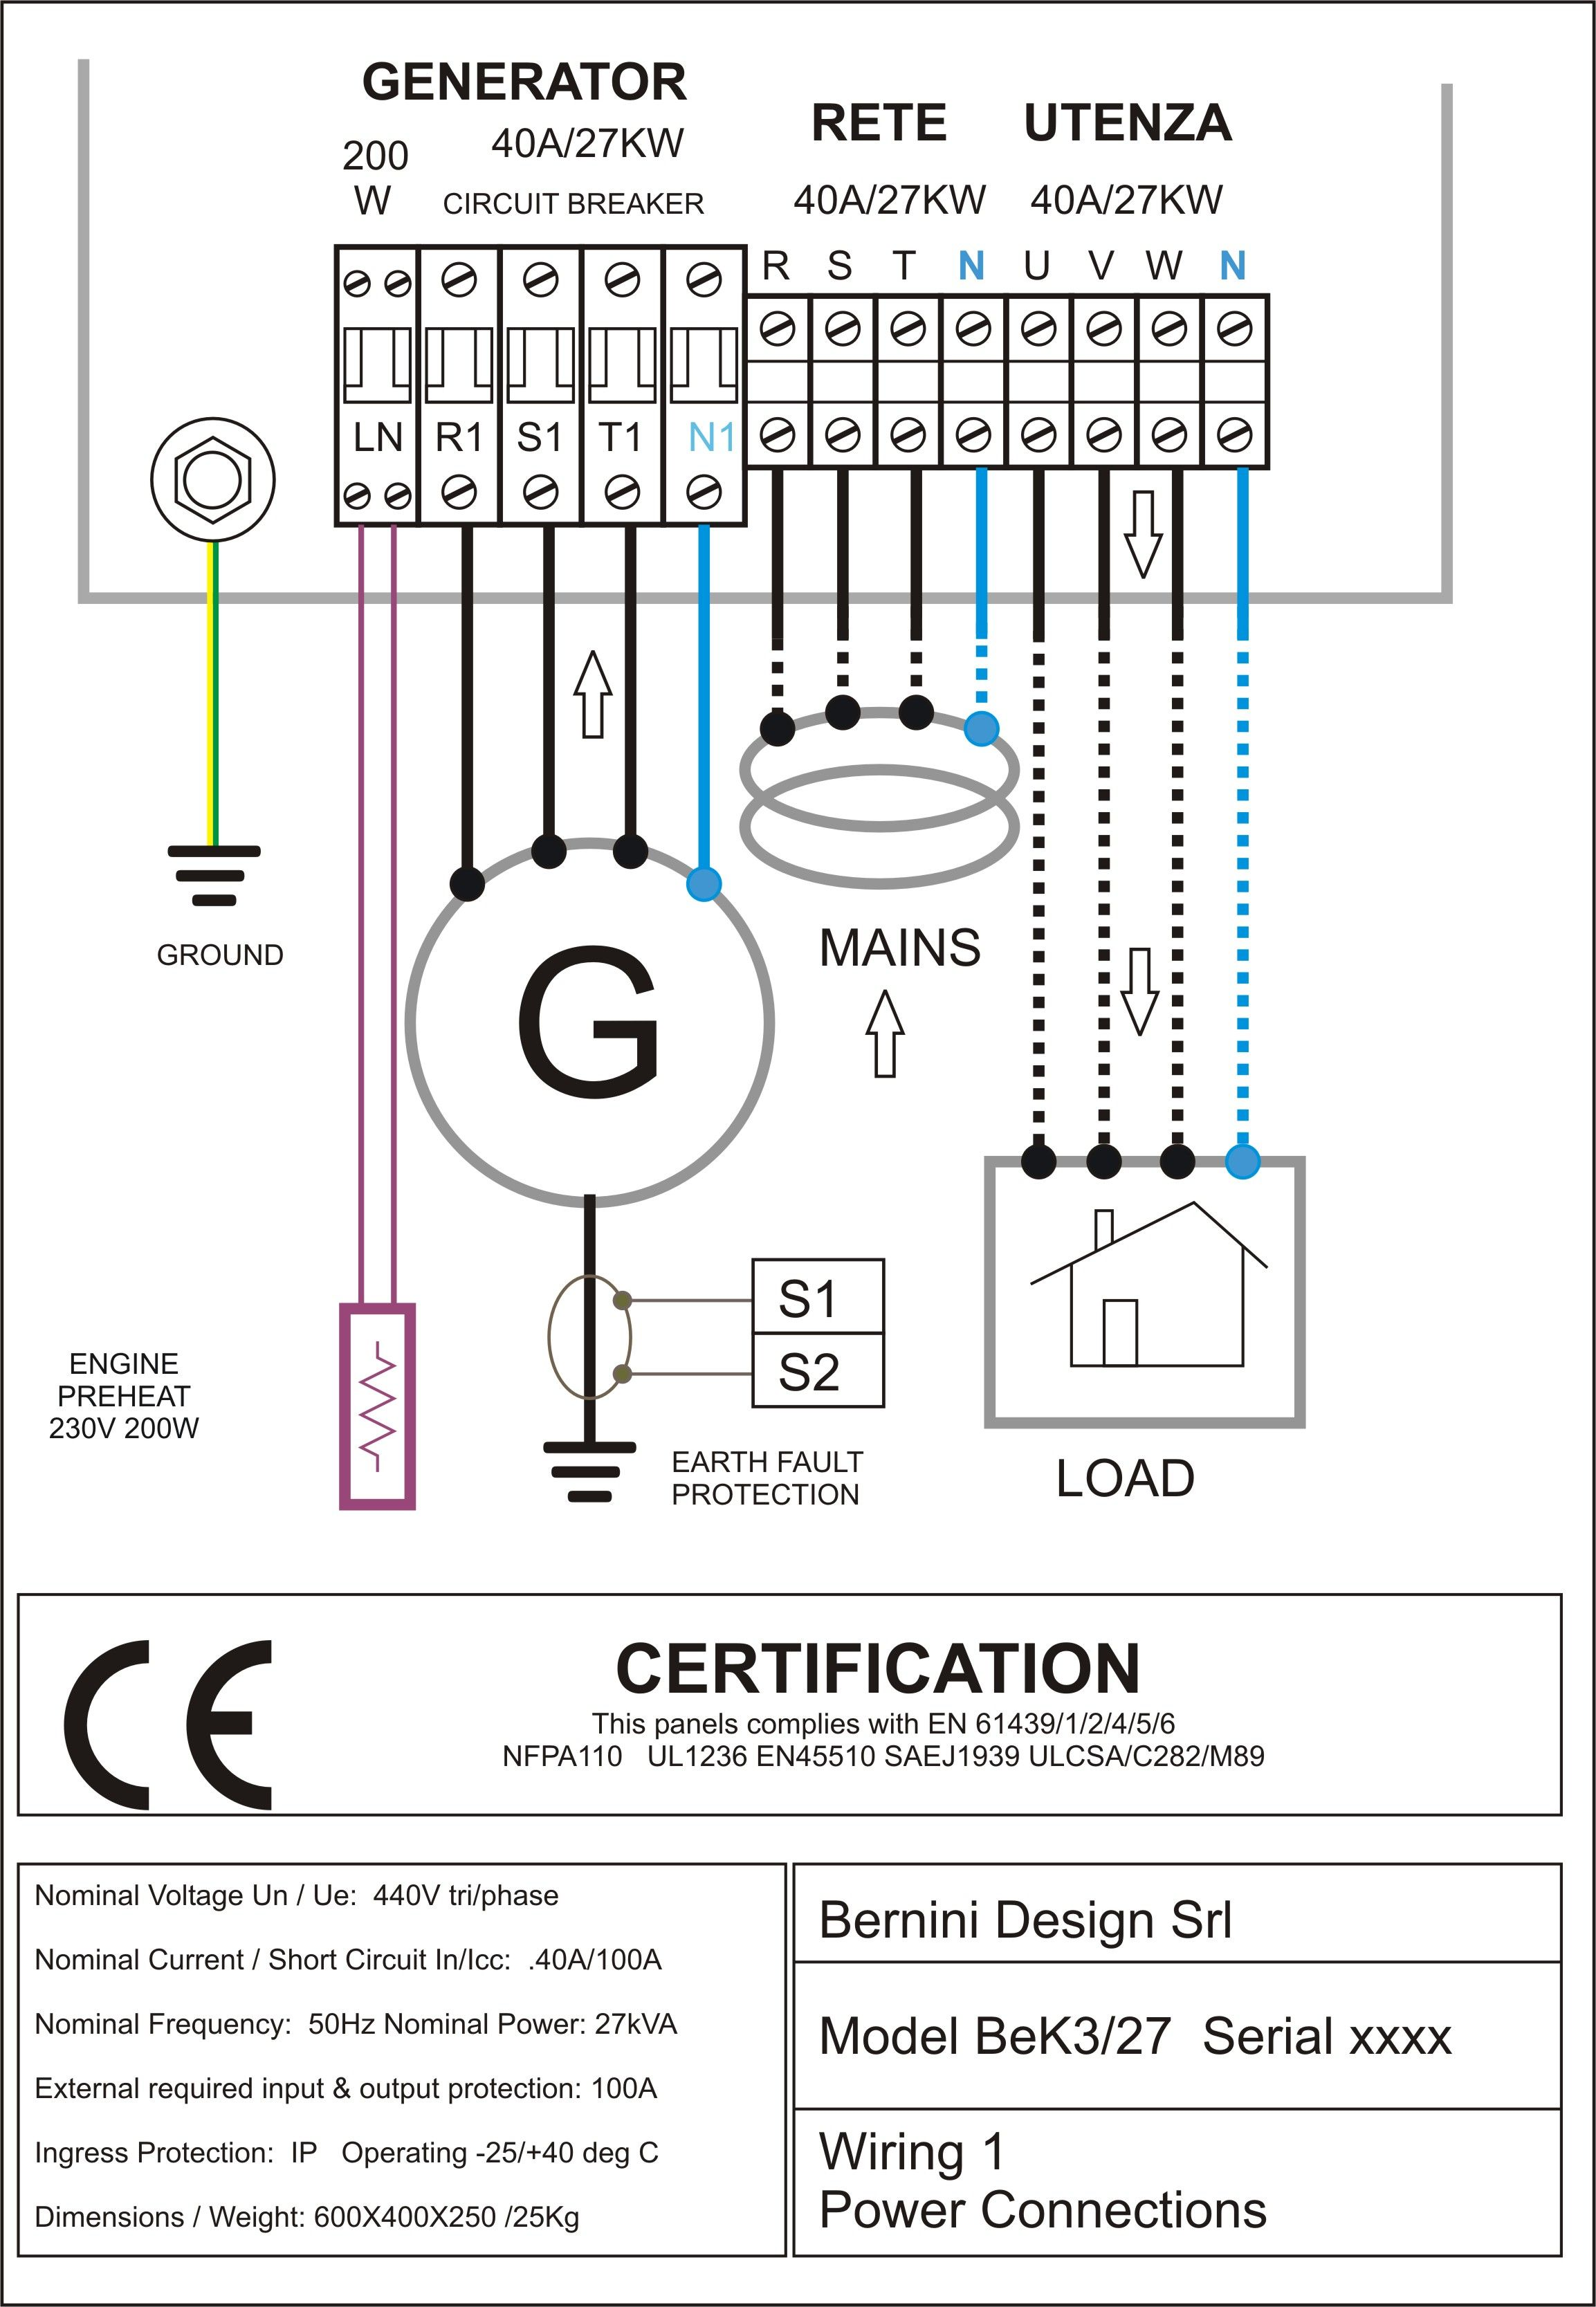 e789bca93f9142d48250ddc66668a81d diesel generator control panel wiring diagram ac connections gr generator panel wiring diagram at bakdesigns.co